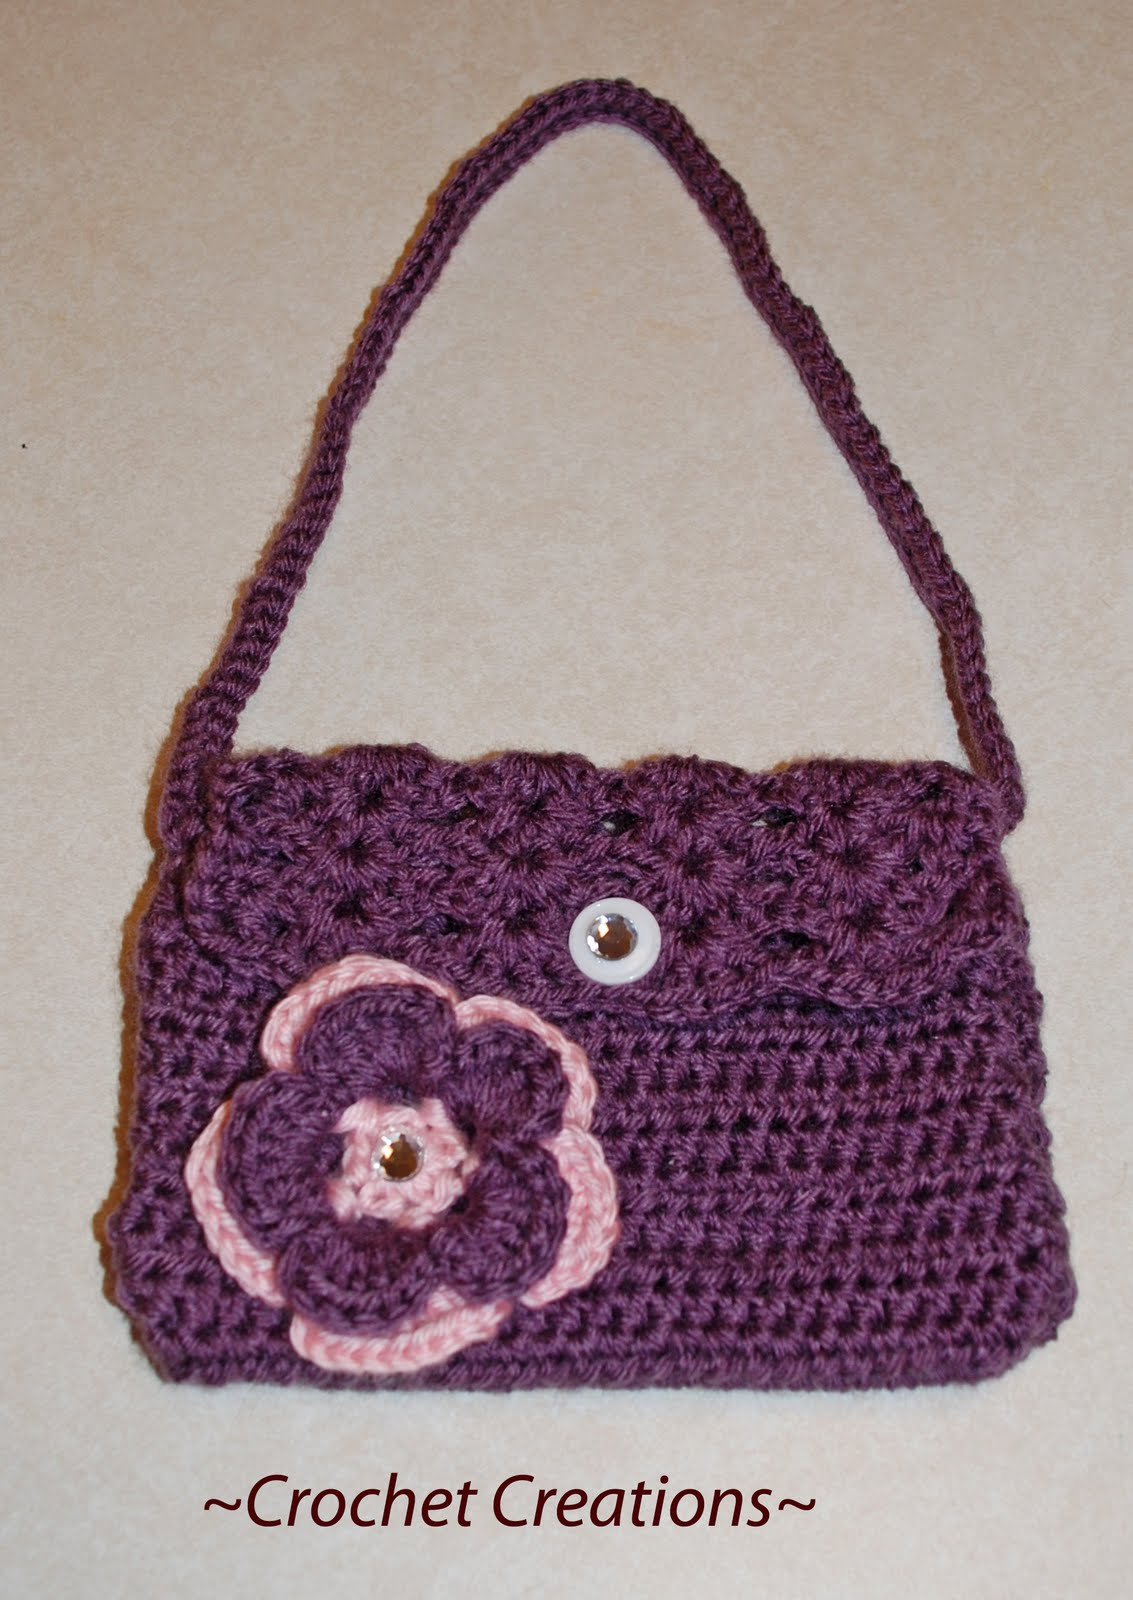 Crochet Patterns Purses : Crochet Pattern Central - Free Purse Crochet Pattern Link Directory